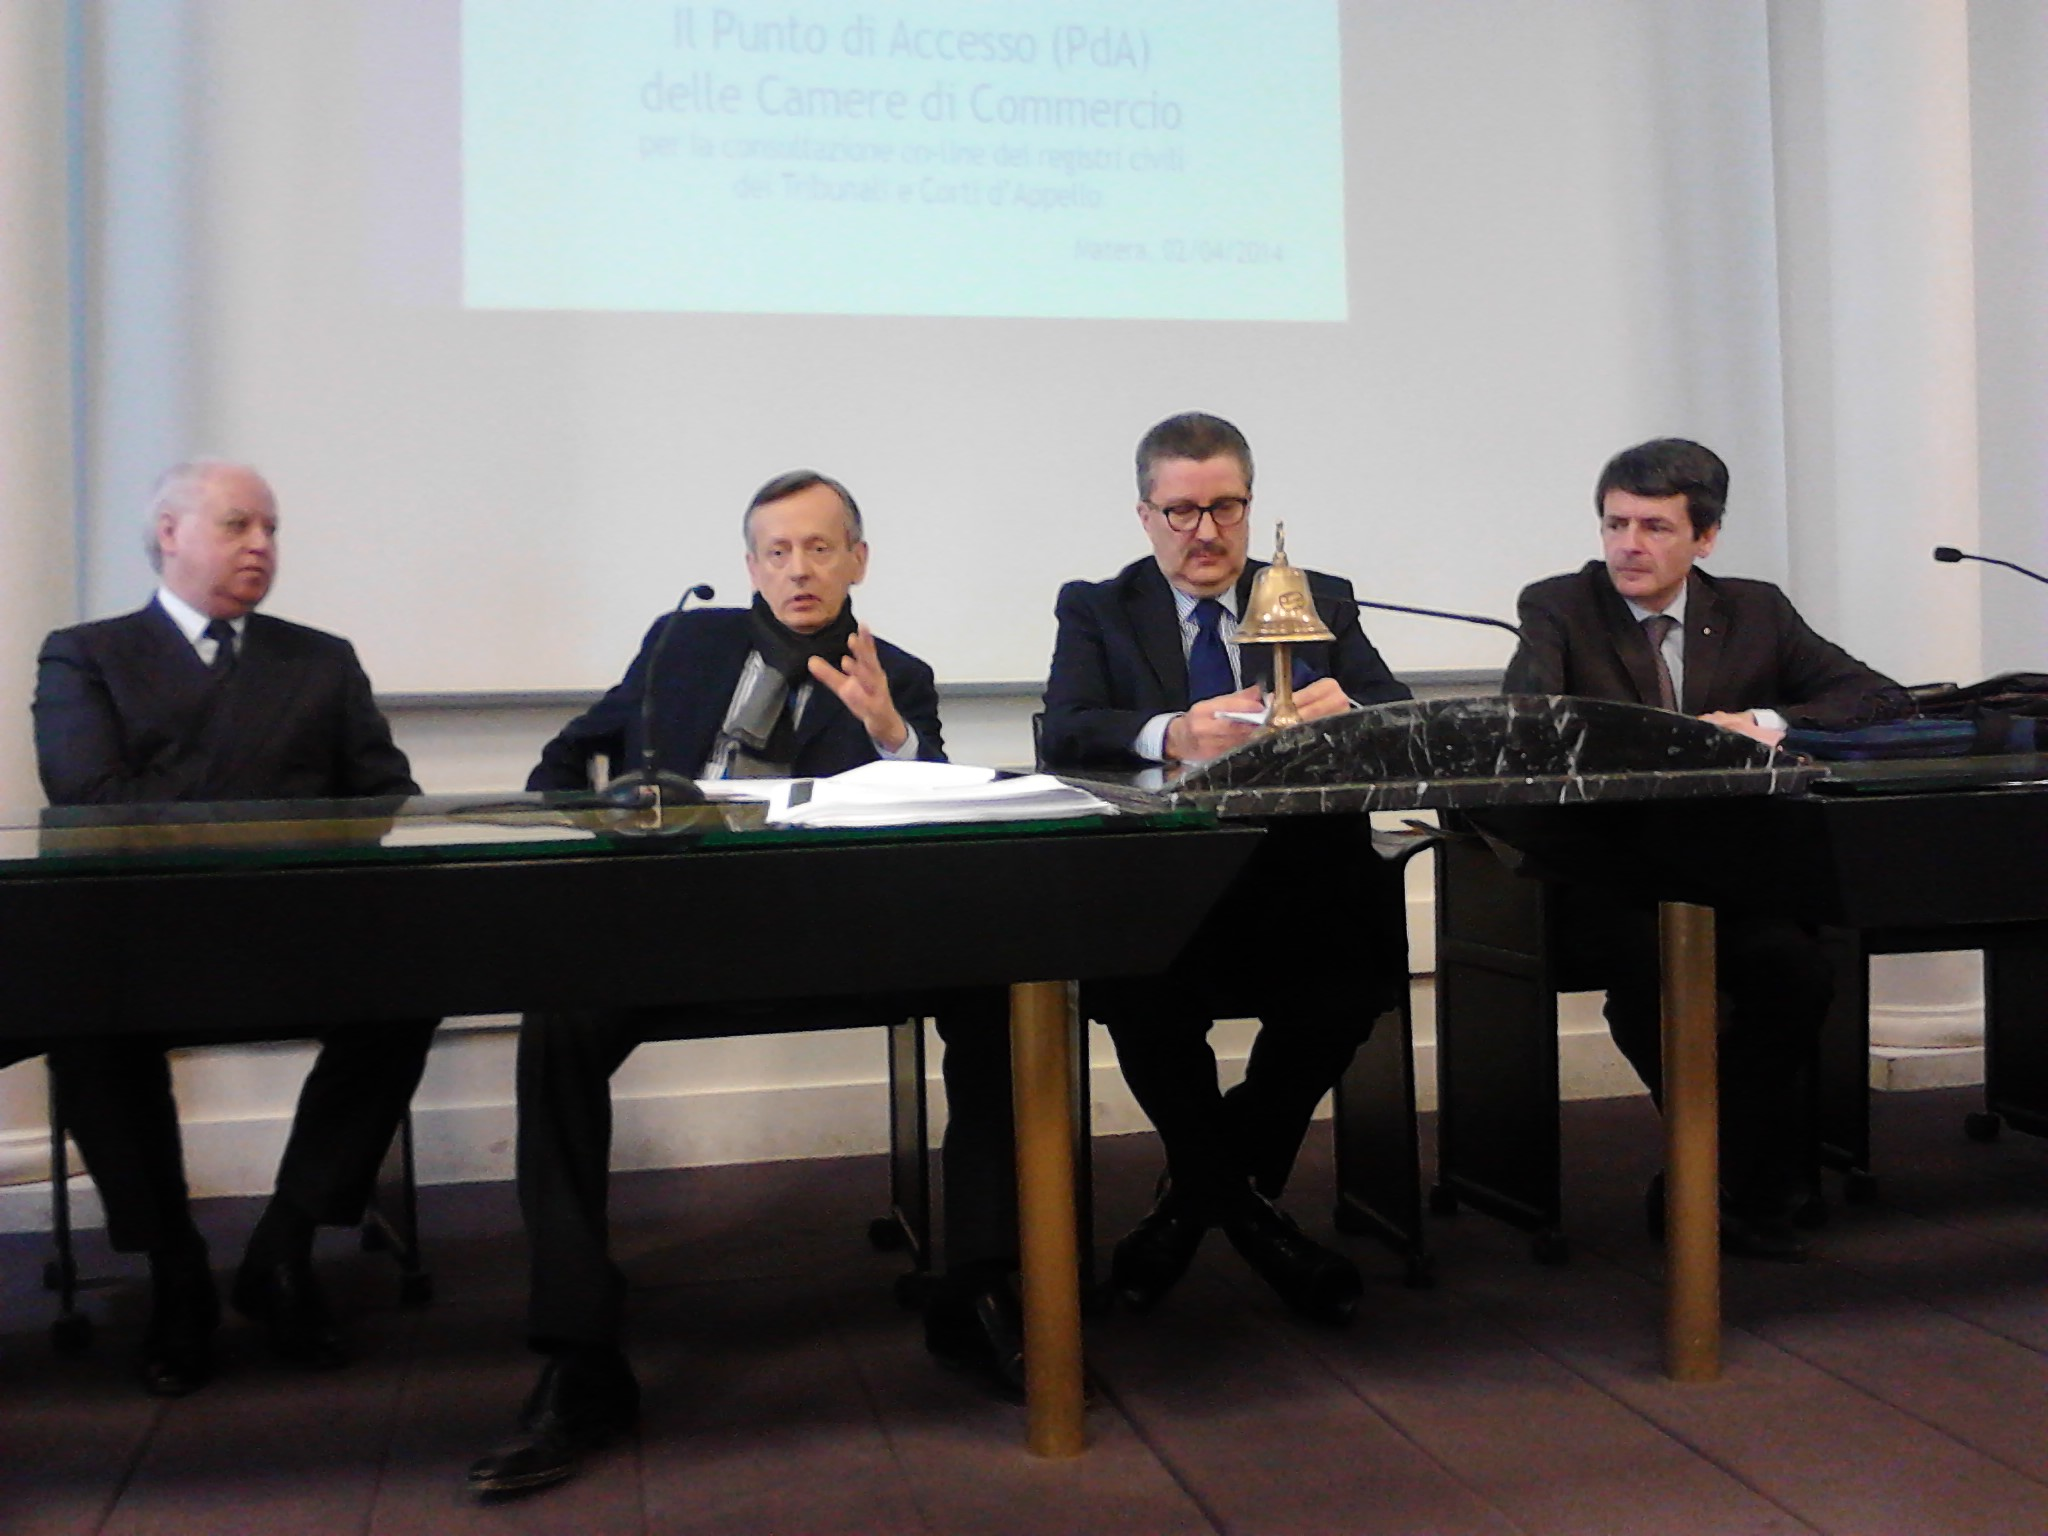 /uploaded/Foto Articoli/cciamt%2C conferenza stampa 2 (2).jpg